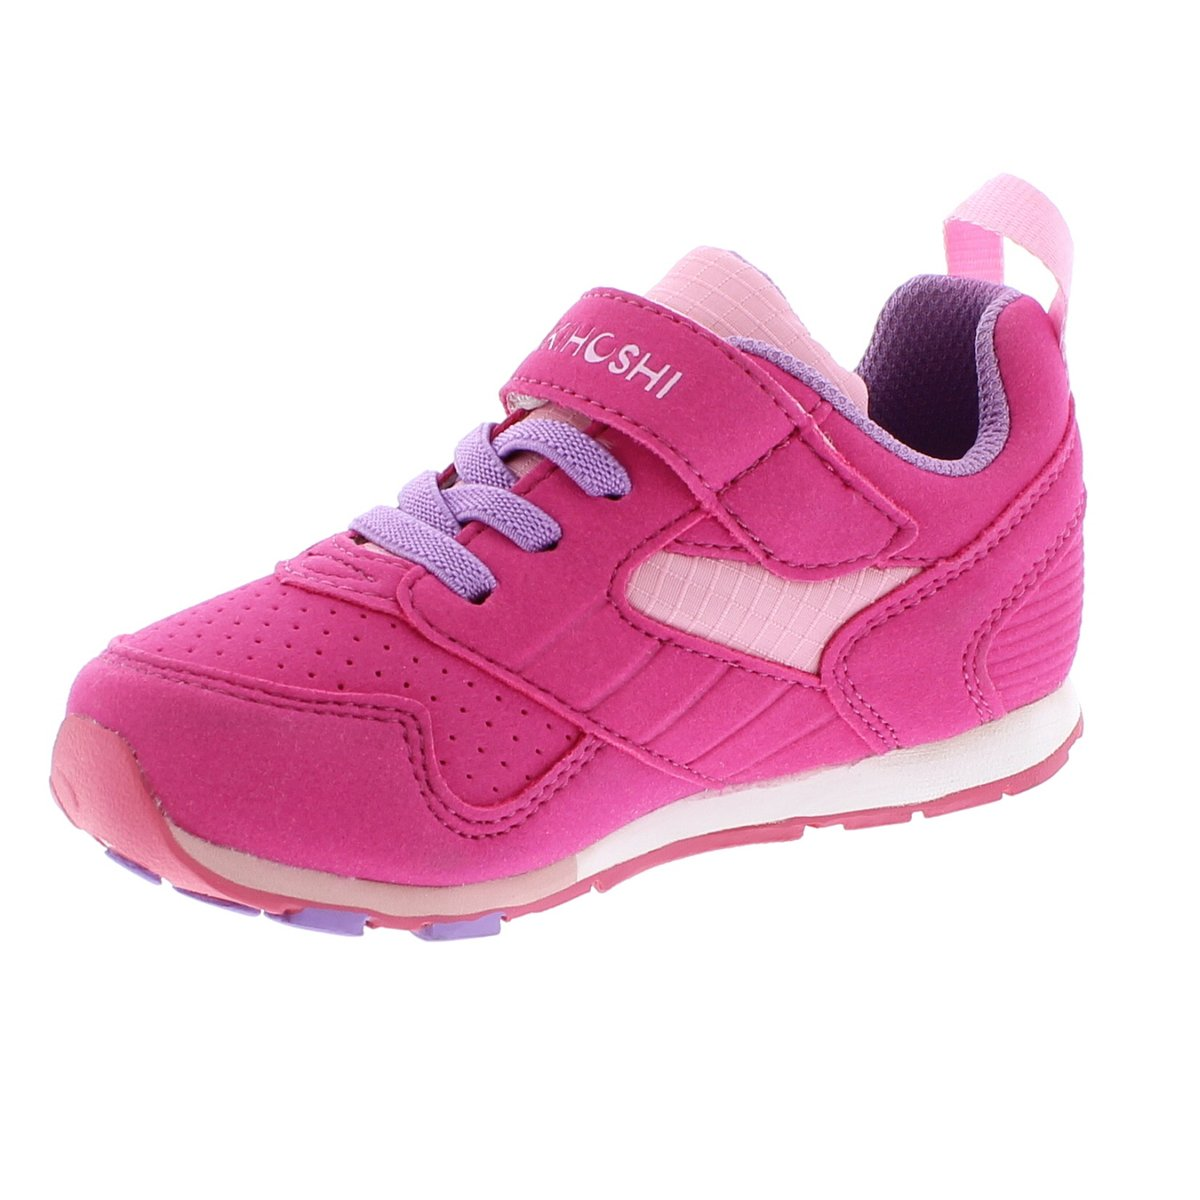 Child Tsukihoshi Racer Sneaker in Fuchsia/Pink from the front view